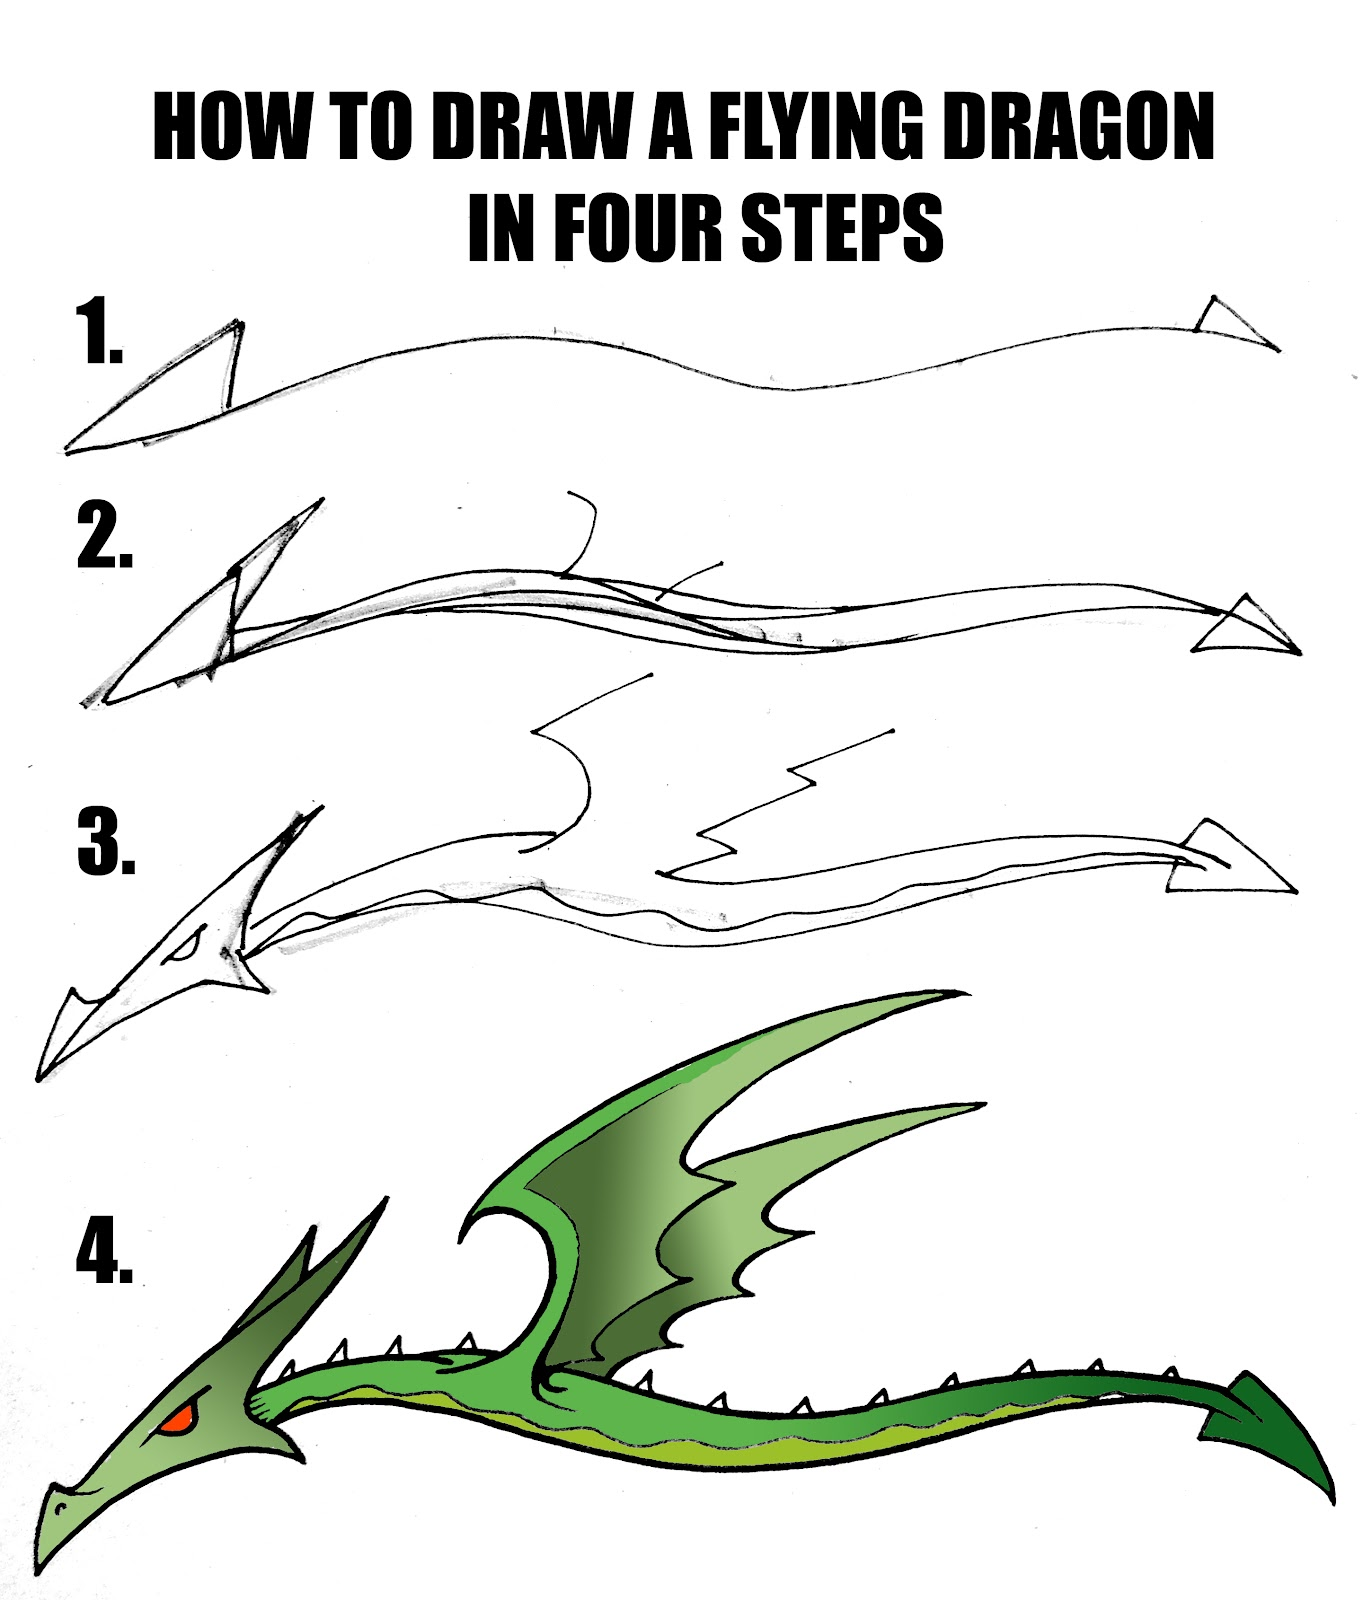 How To Draw A Dragon In Four StepsEasy Dragon Drawings Steps